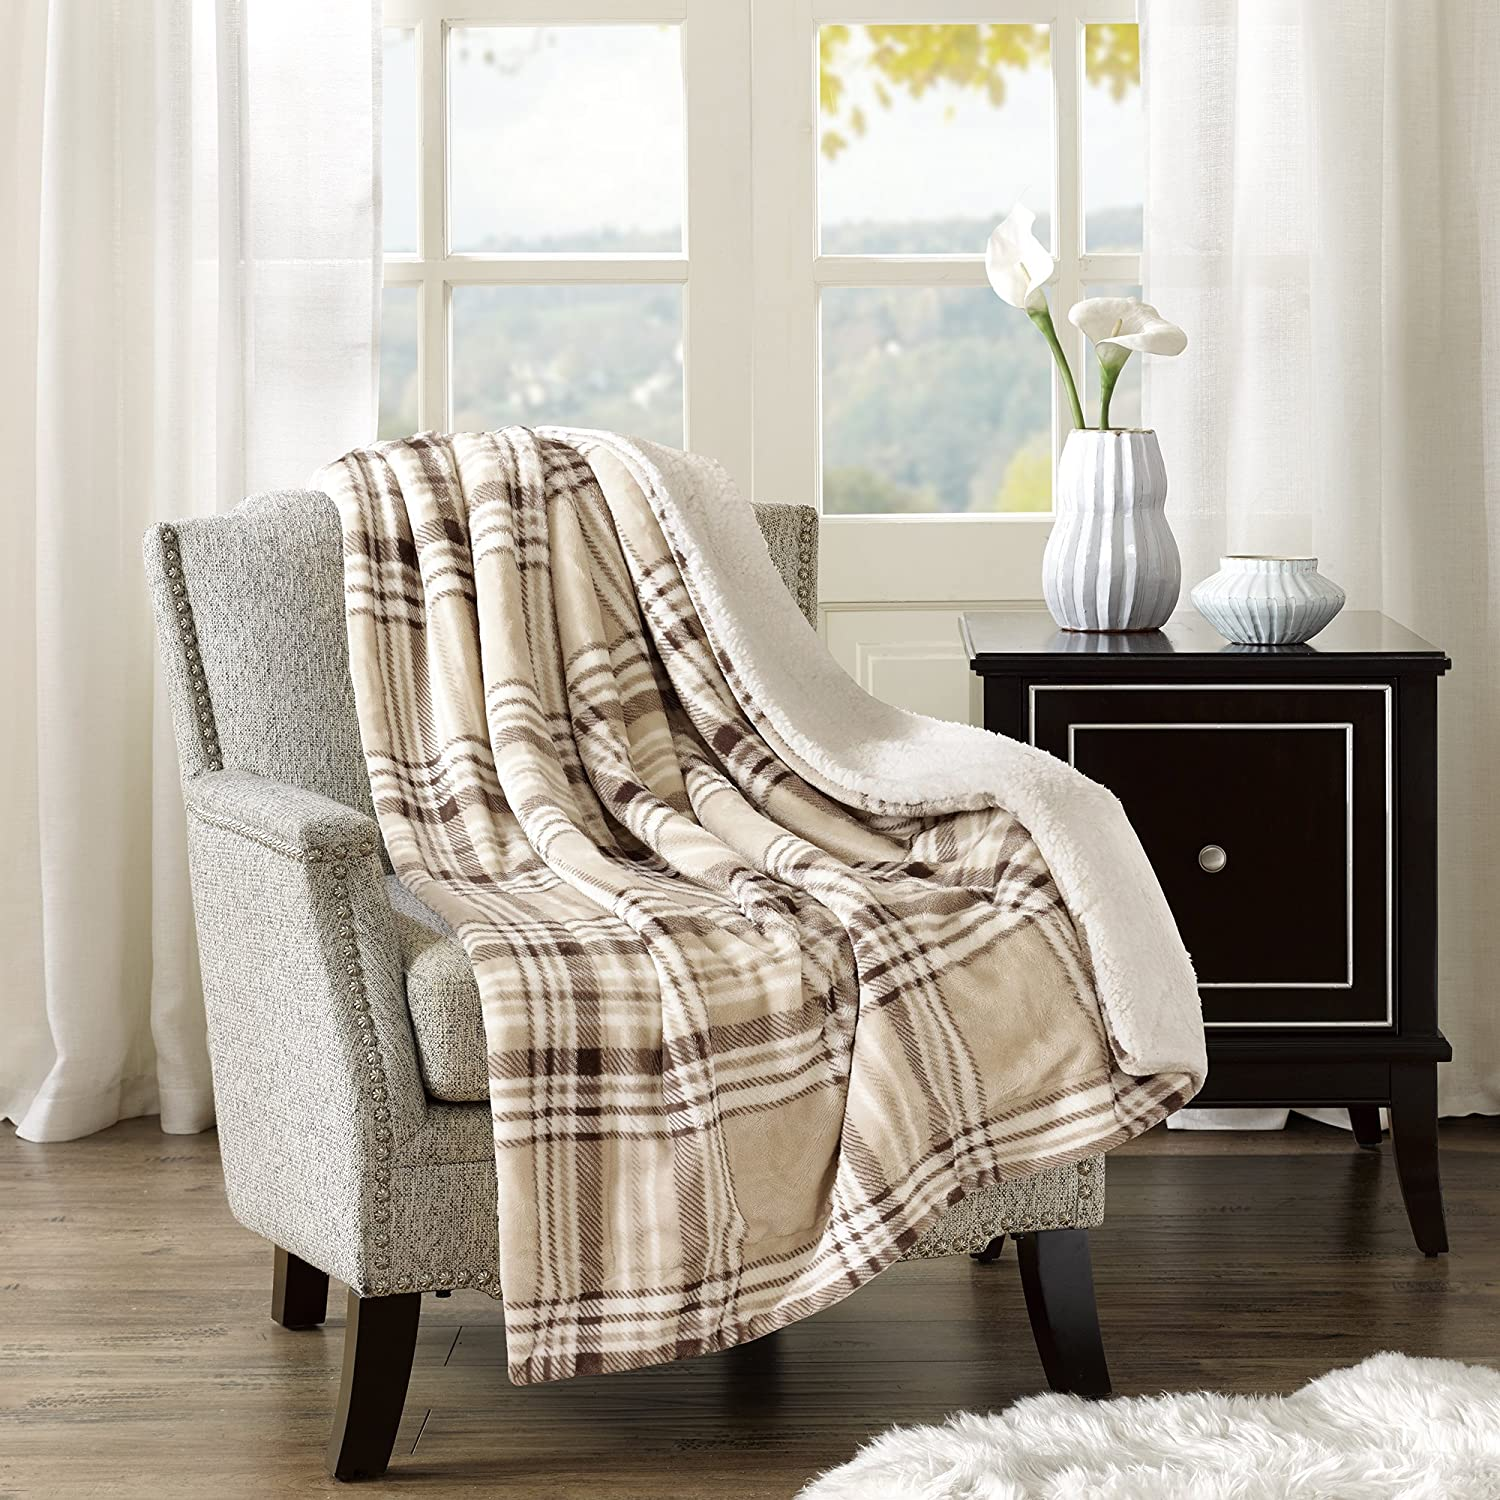 Sherpa/Plush Throw Blanket for Couch - 50x60 inches